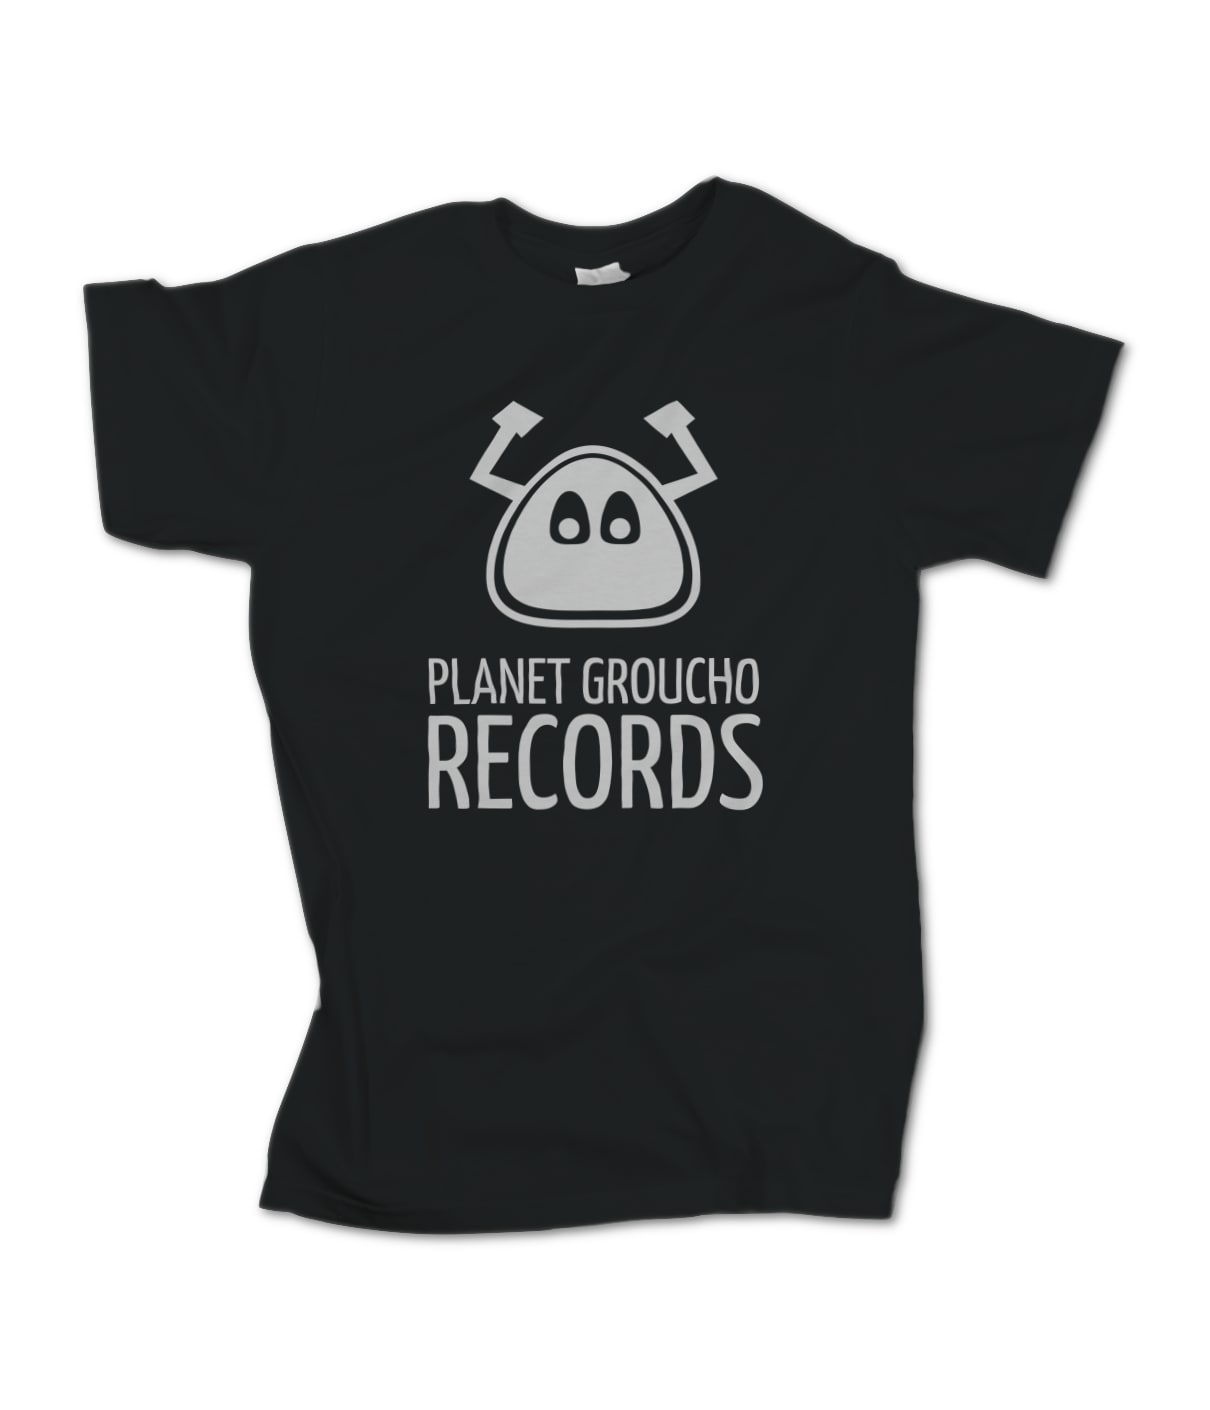 Planet groucho records planet groucho records logo tee a4geoc